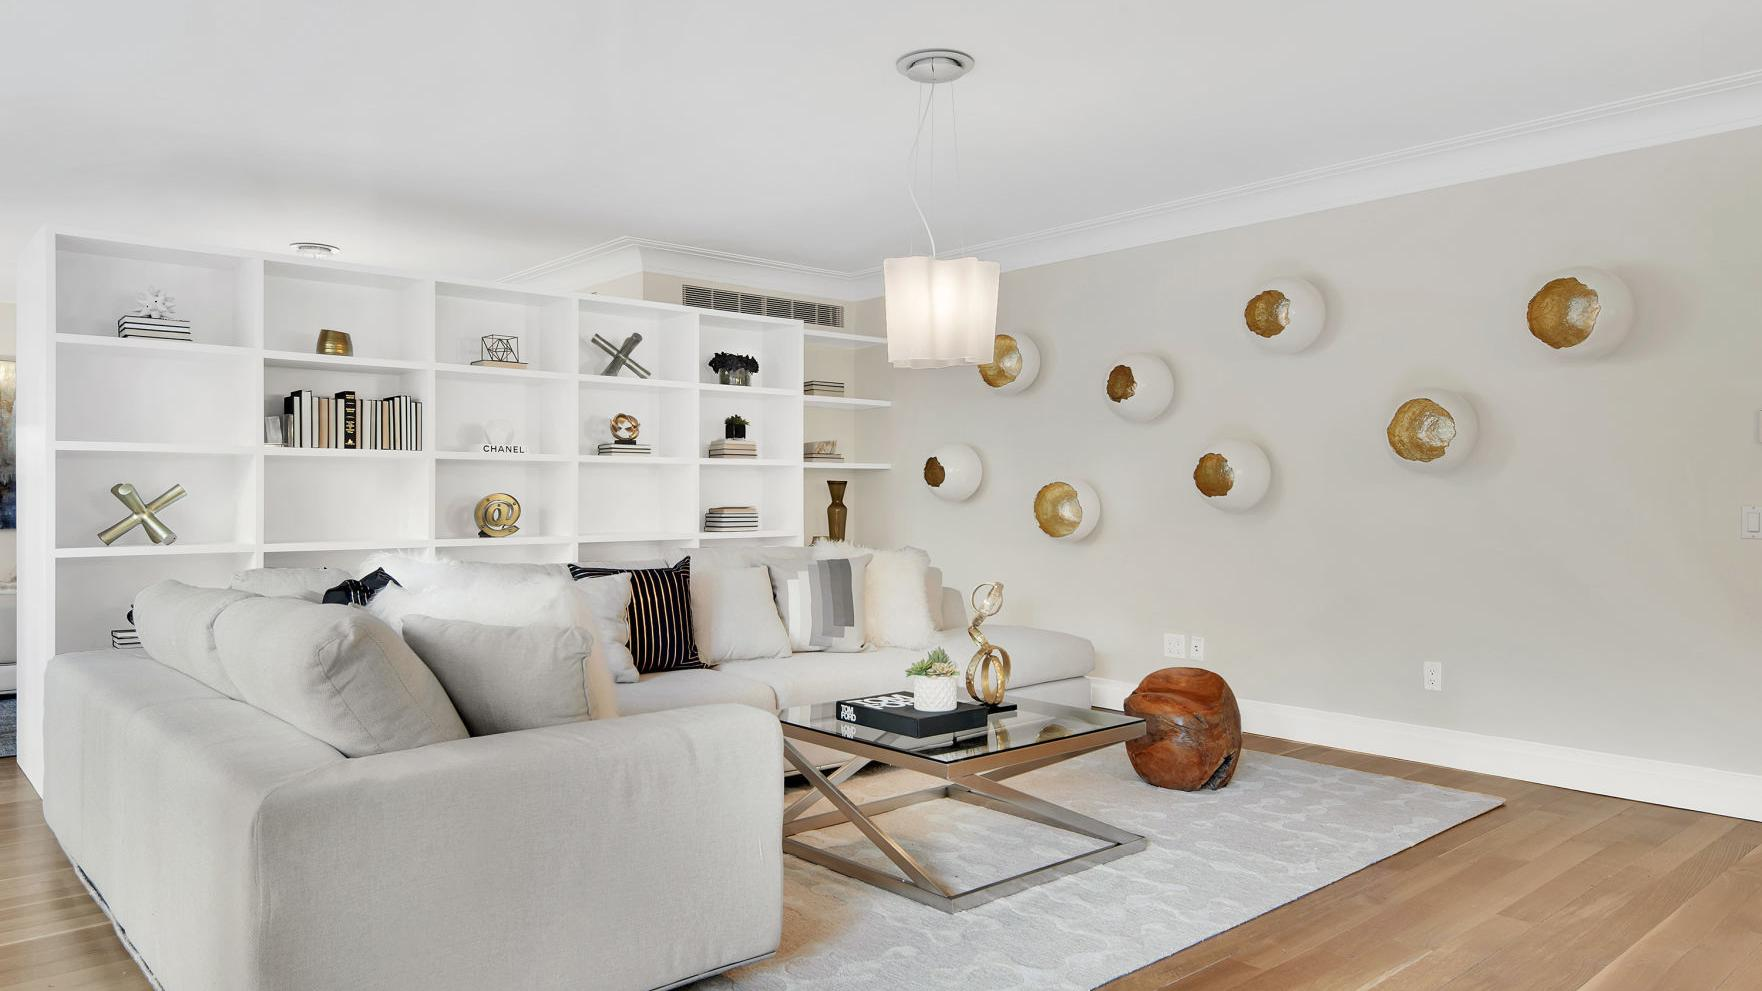 Design Recipes: All that glitters is gold (accents)